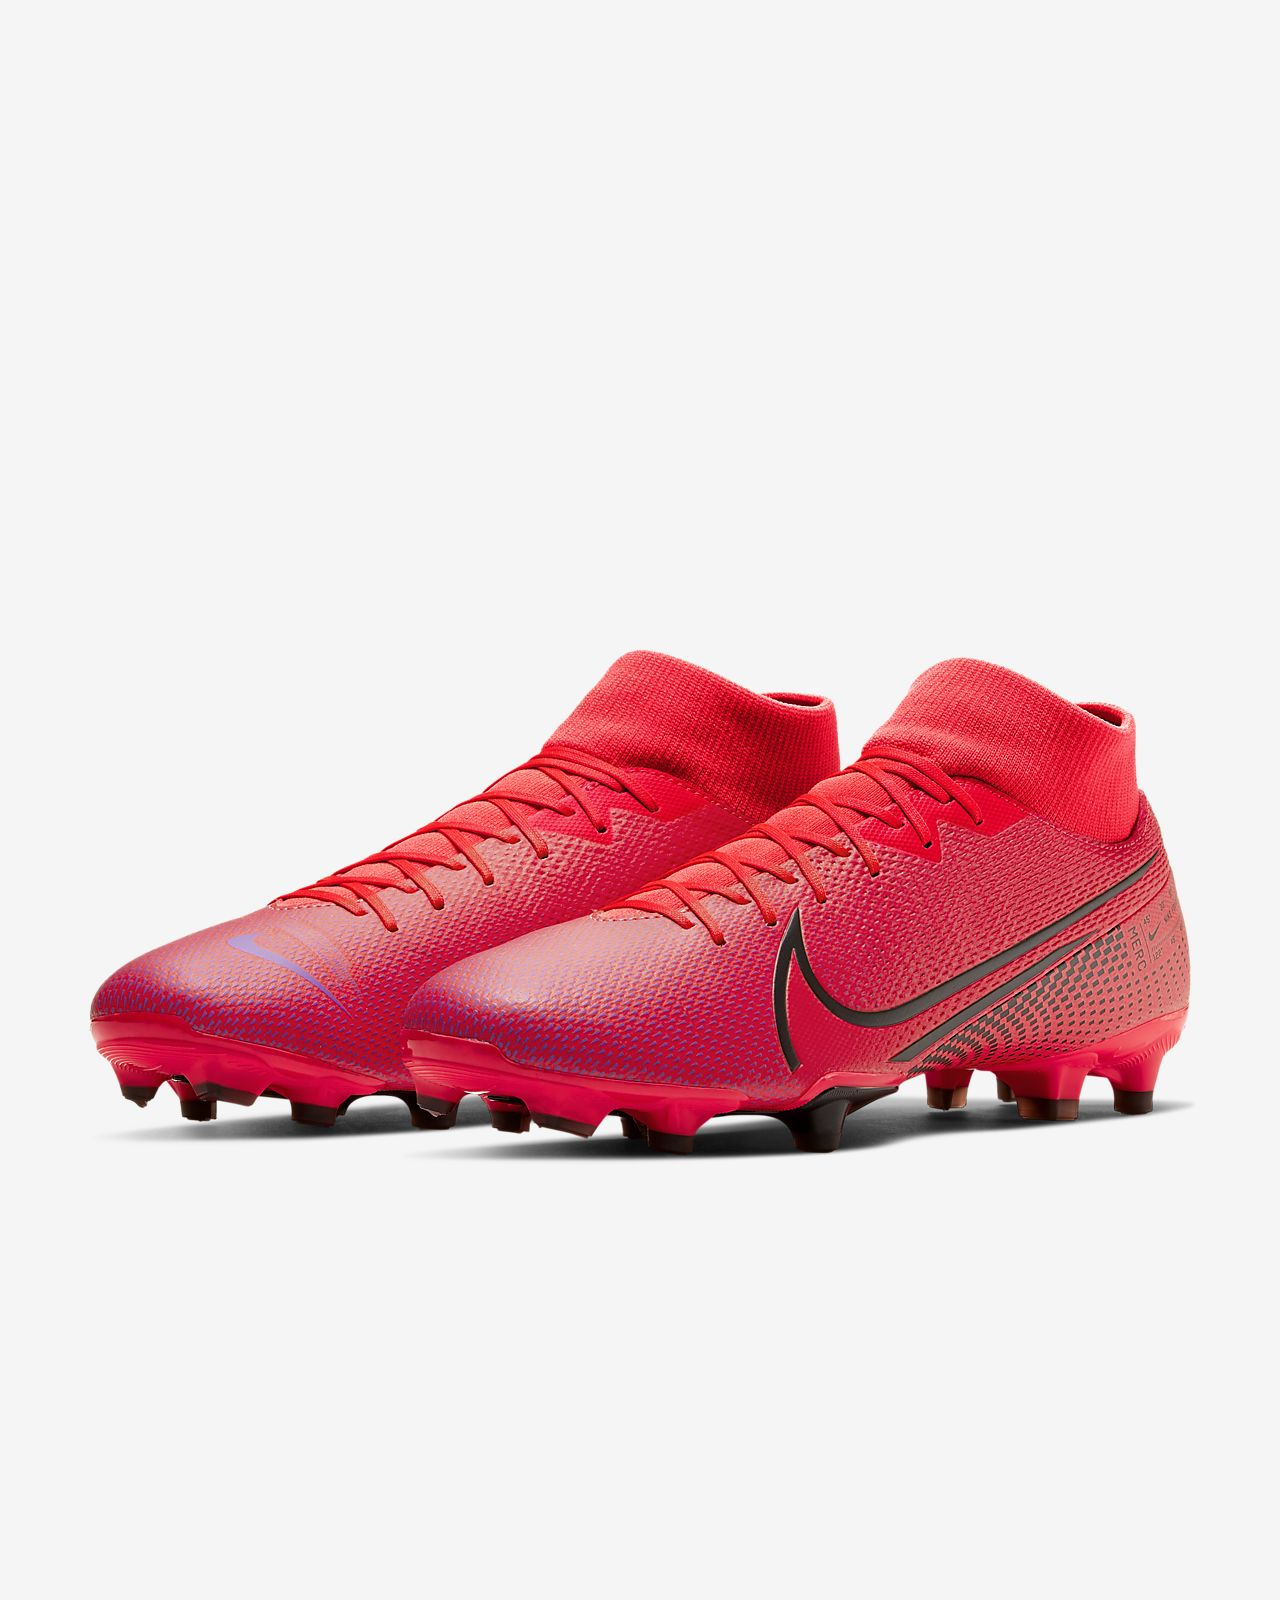 Nike Mercurial Superfly 2010 | Football boots, Sport shoes